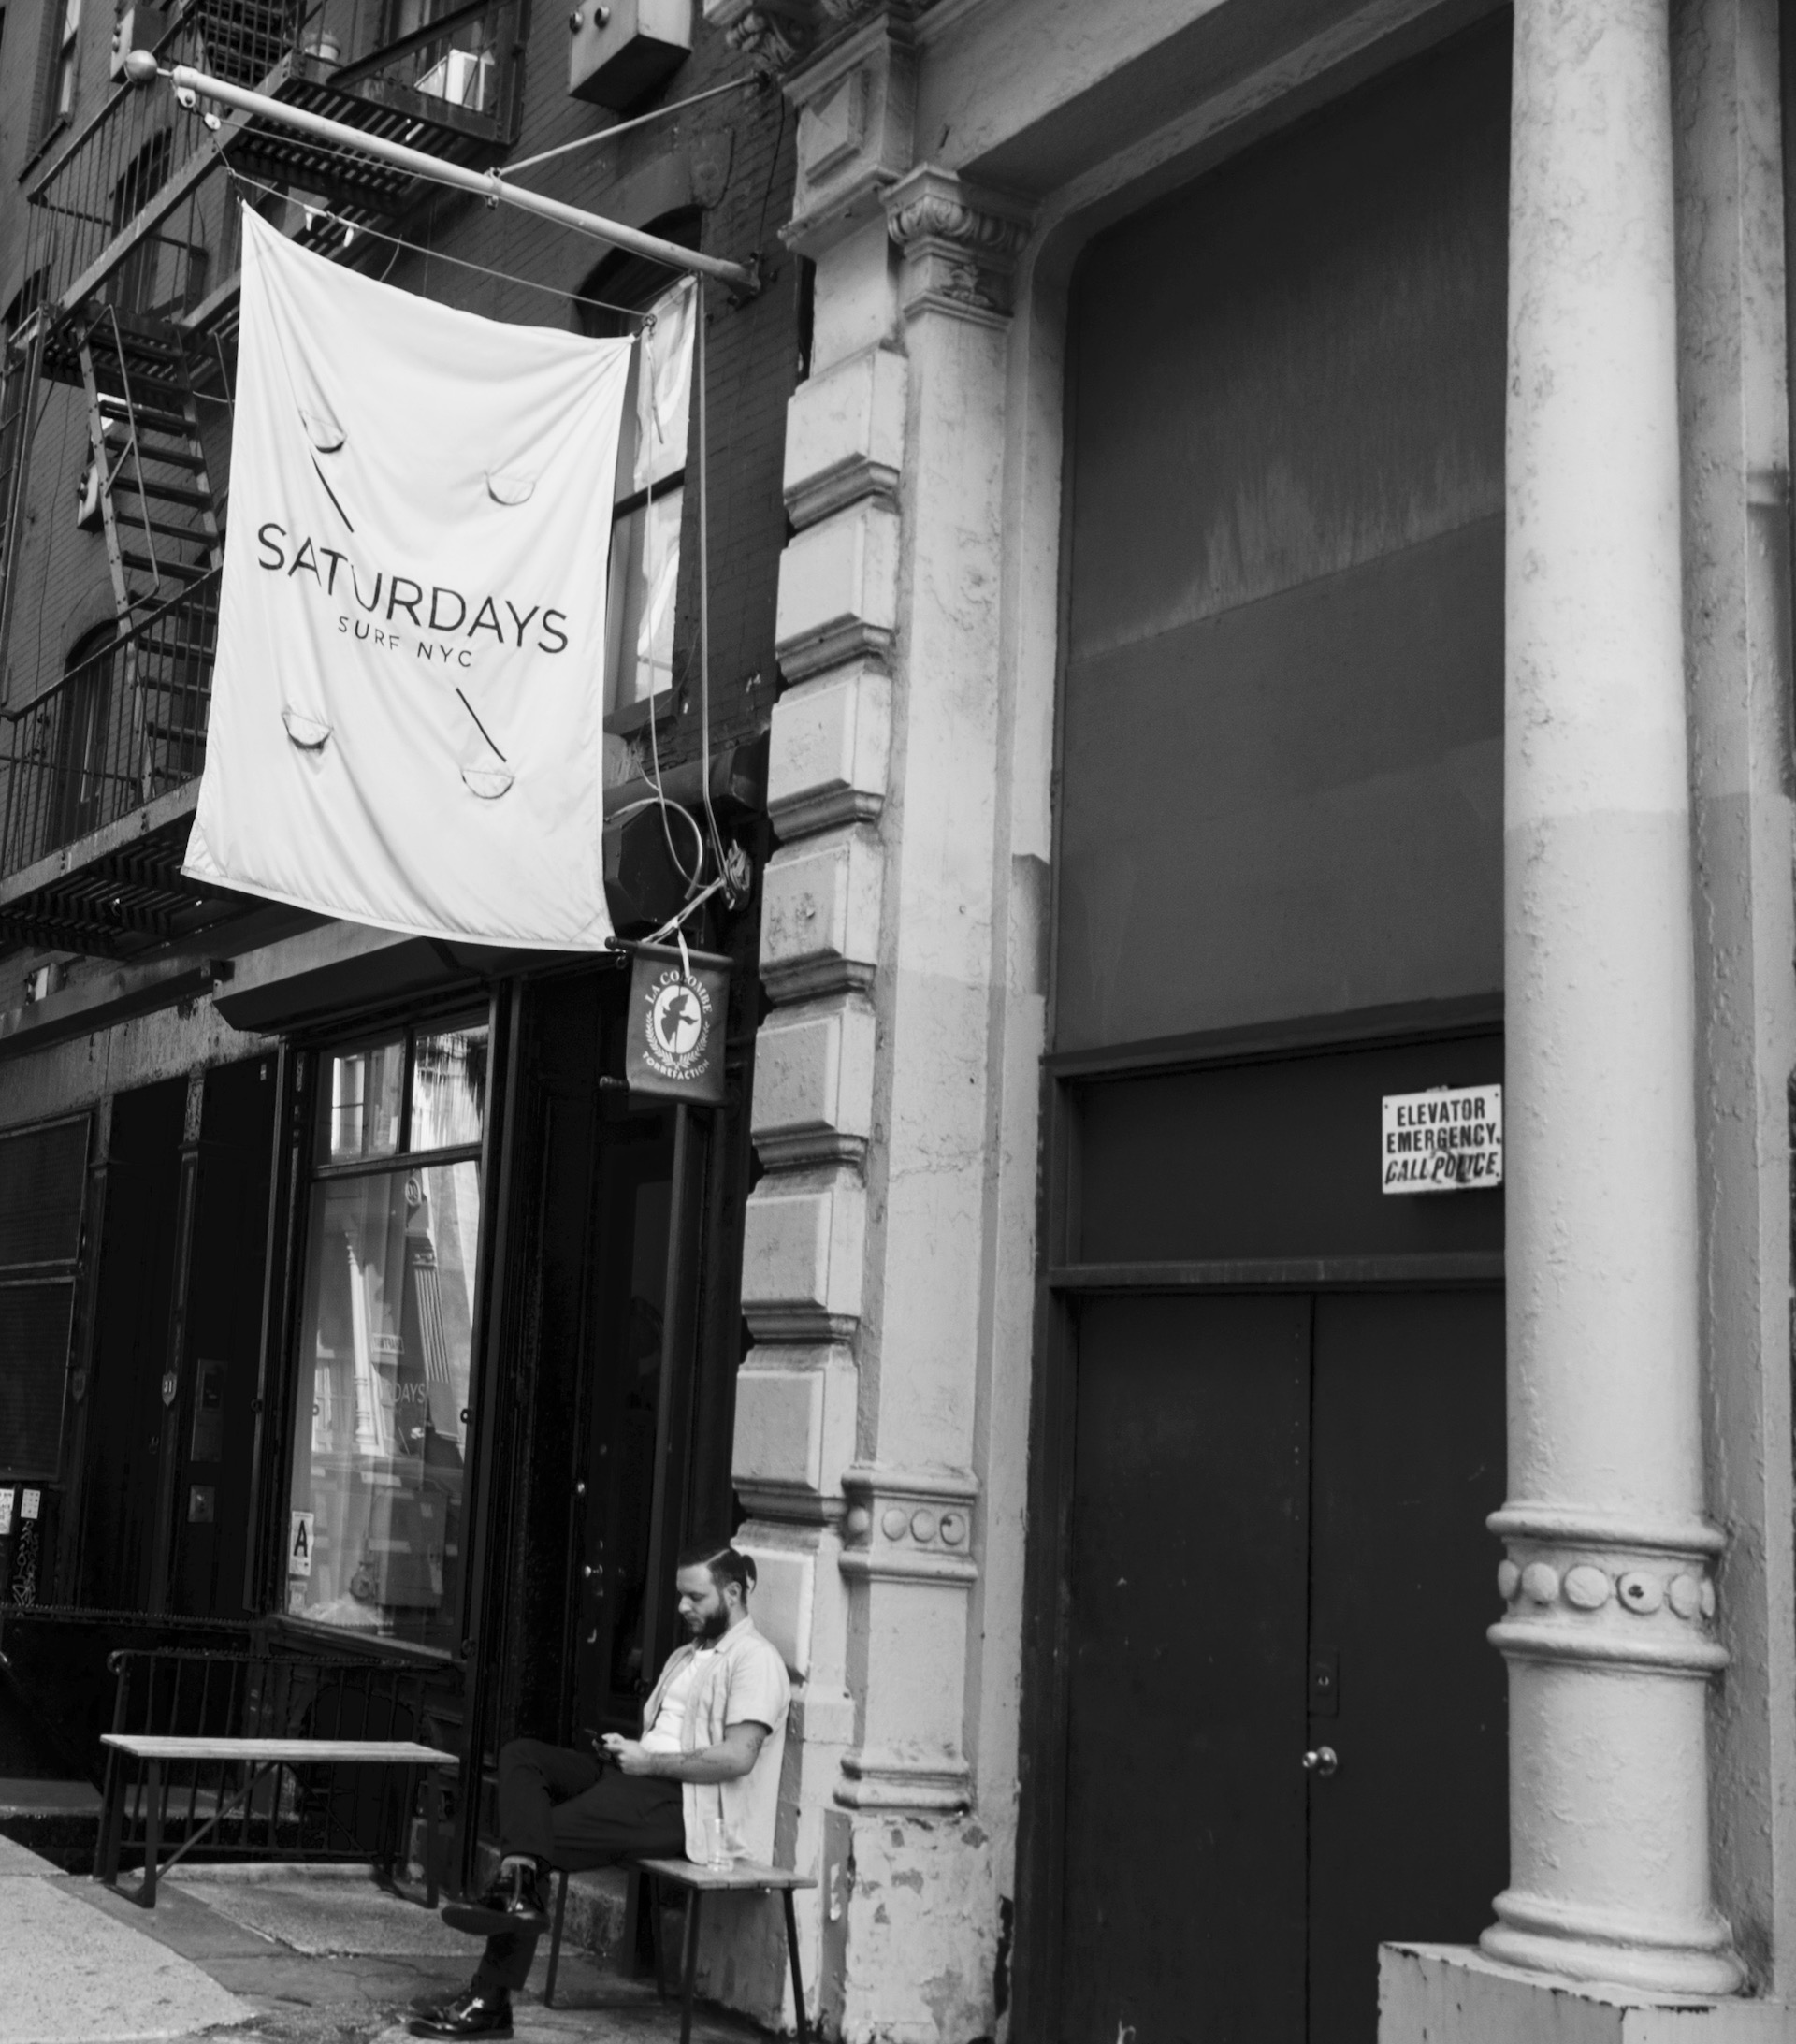 Image of an entrance to Saturdays NYC Crosby Street shop